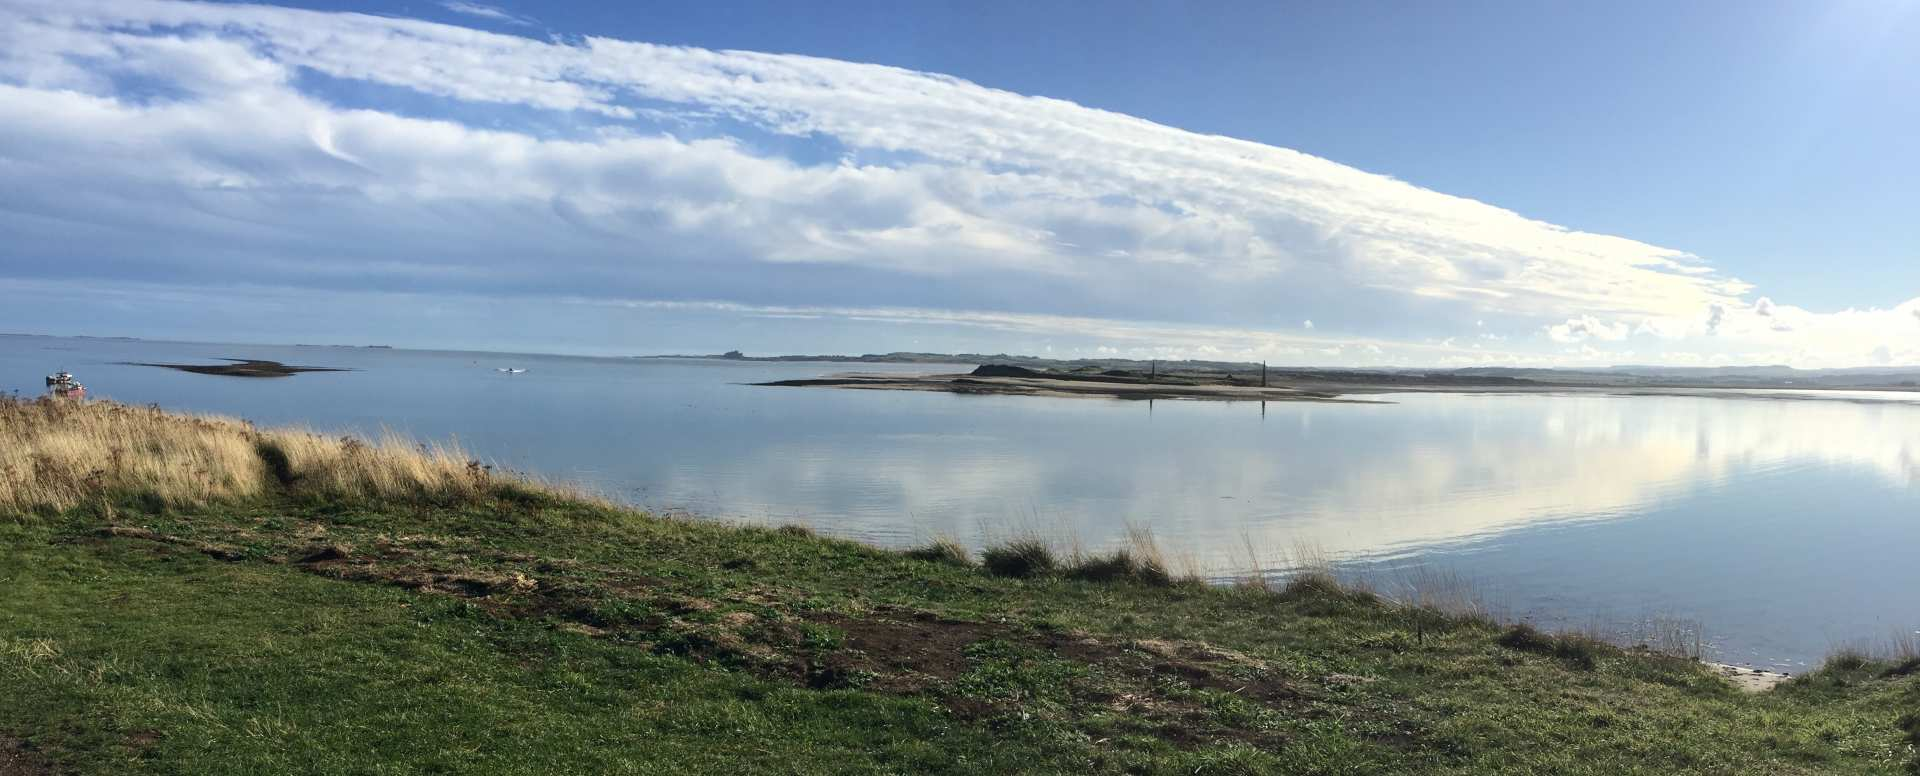 Northumberland Coast Path - Looking toward Bamburgh from Holy Island - Marty and Jane Holski - Landscape.jpeg